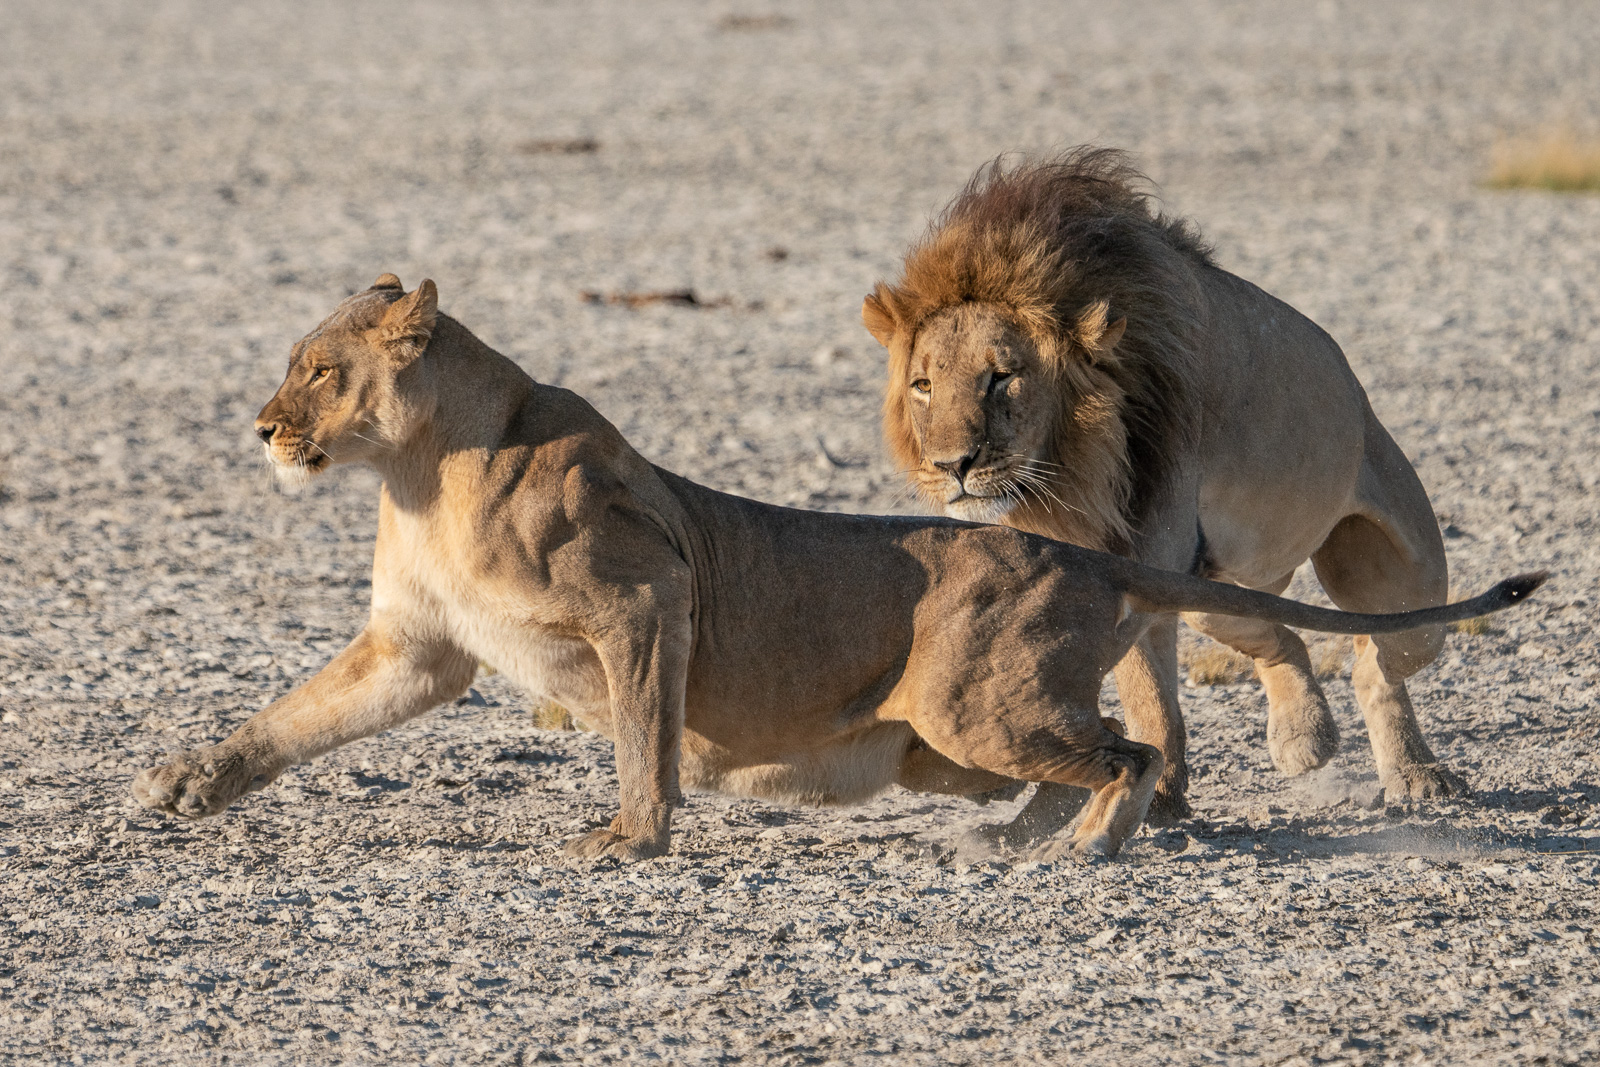 muench-workshops-lions-kalahari-safari.jpg